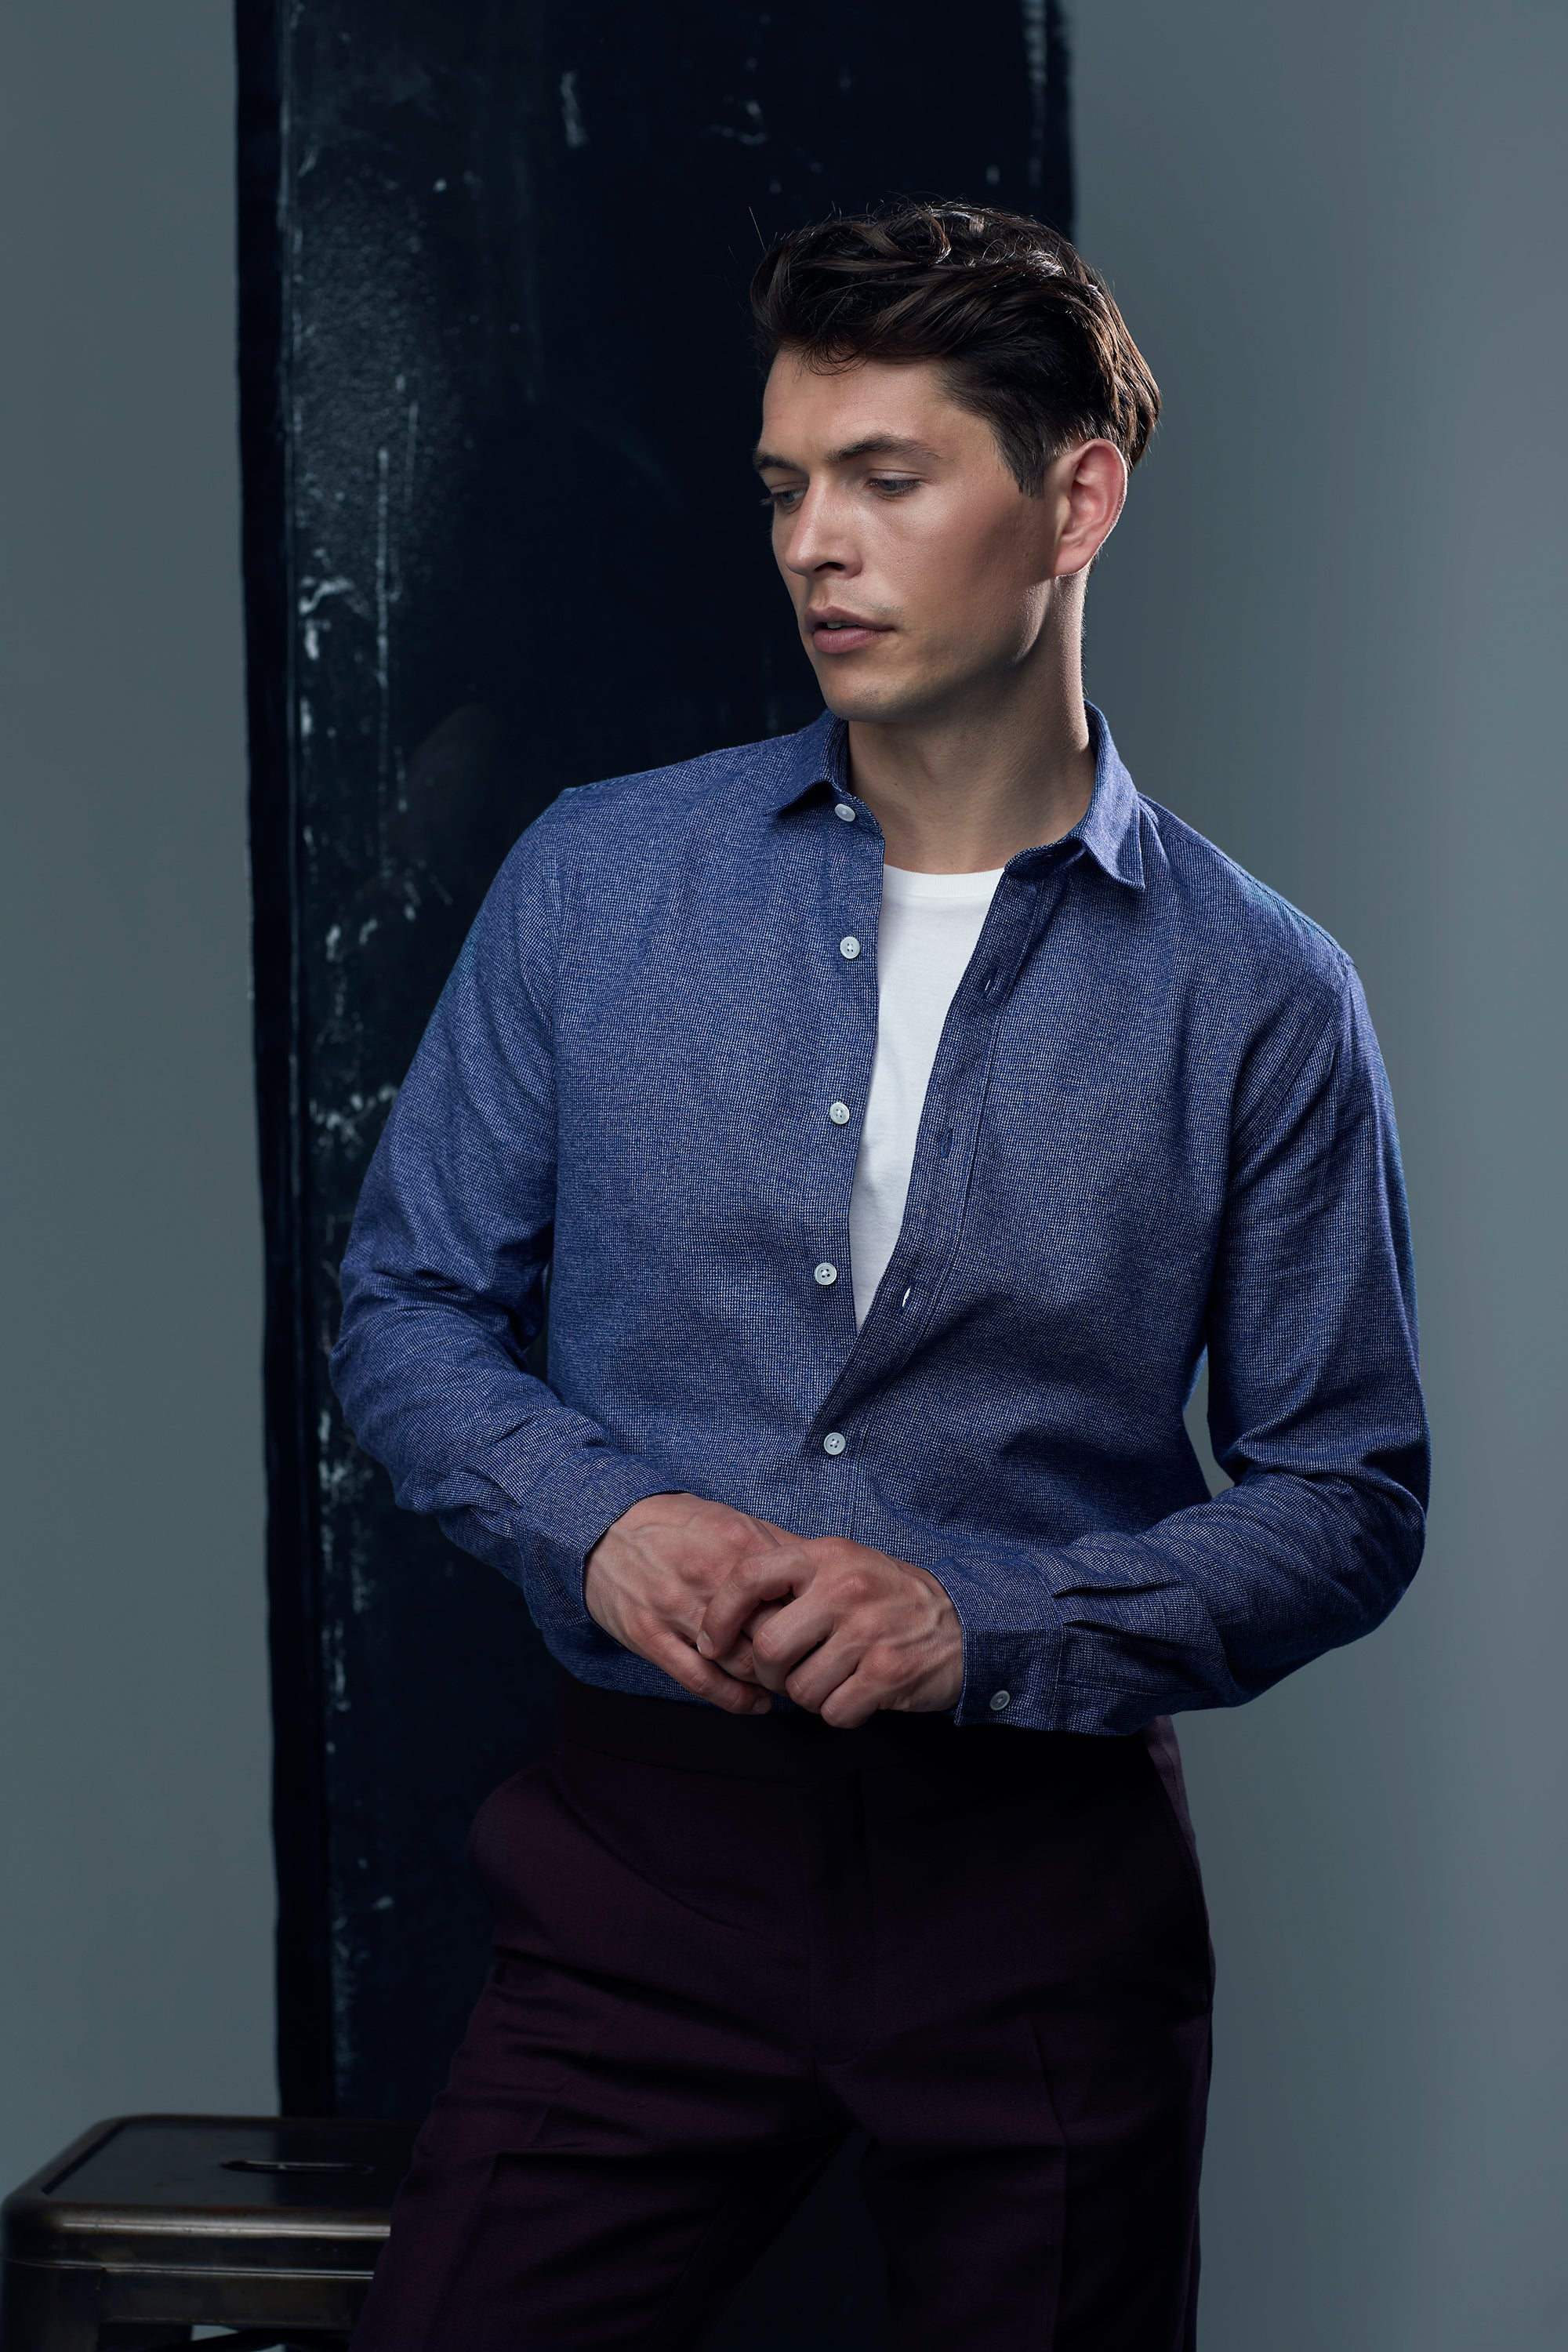 mr start truman style shirt with a t-shirt underneath for causal elegance